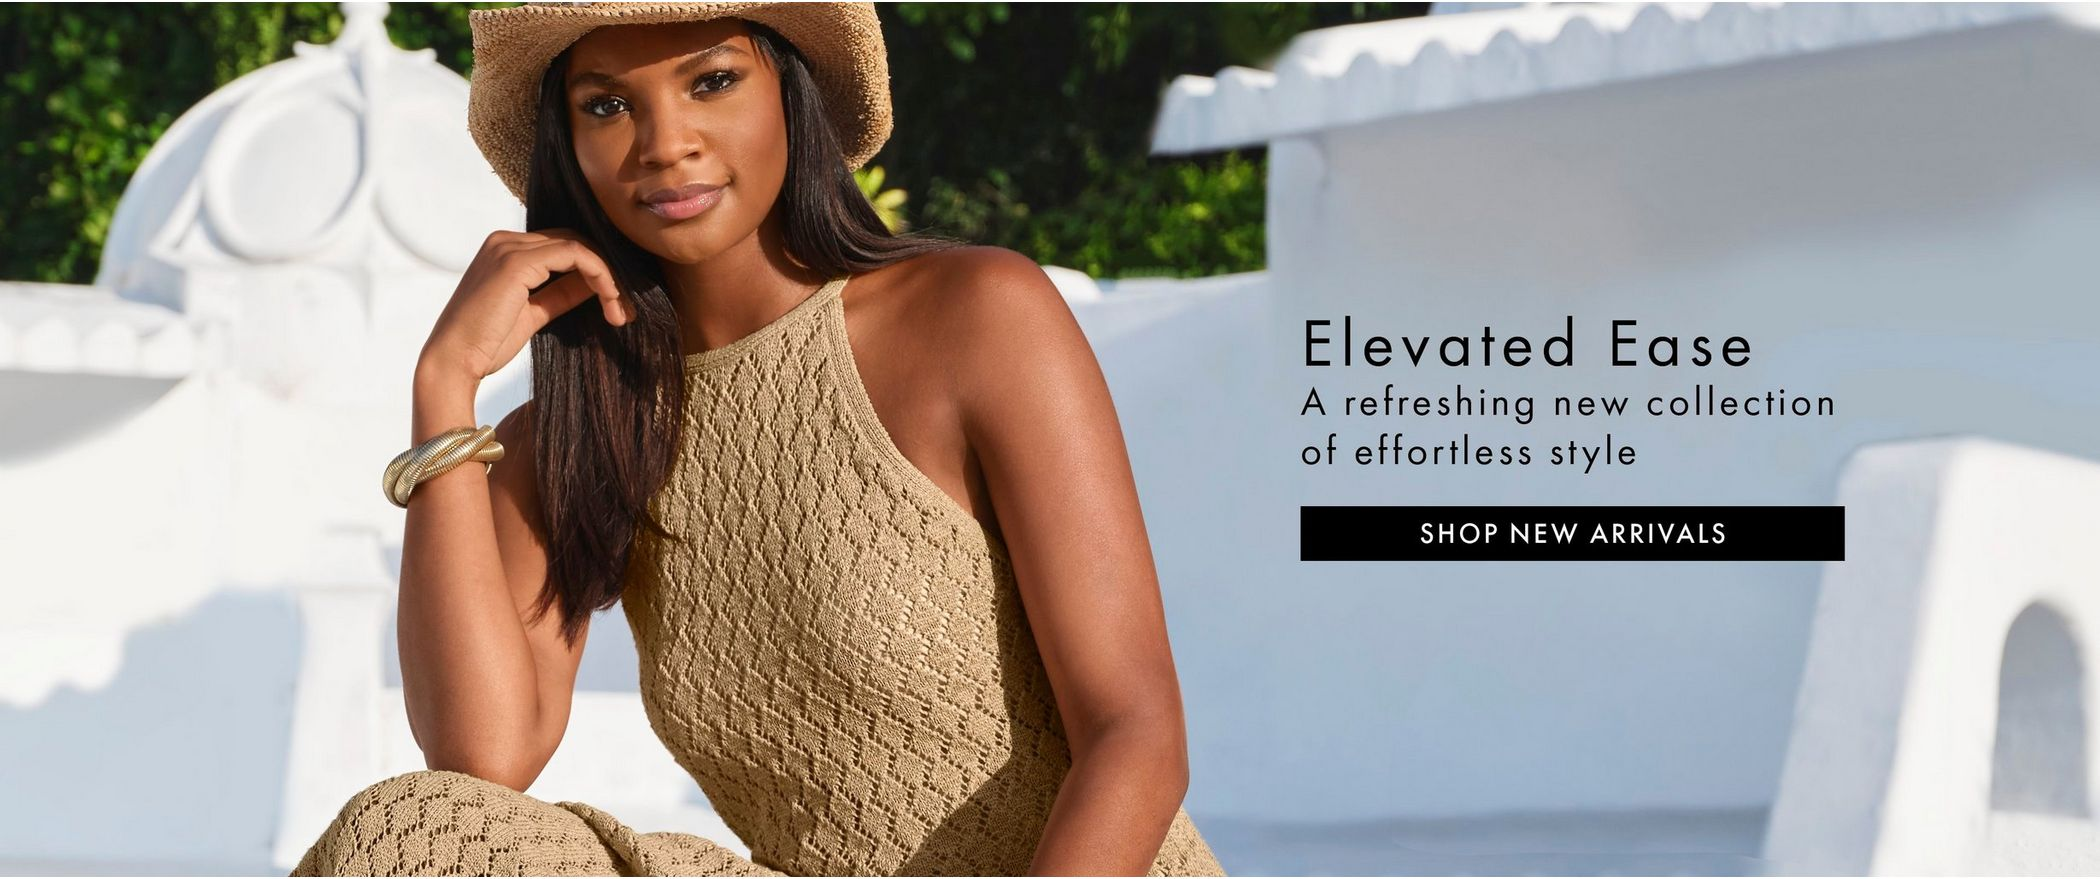 model wearing a tan crochet high neck maxi dress and a straw hat.